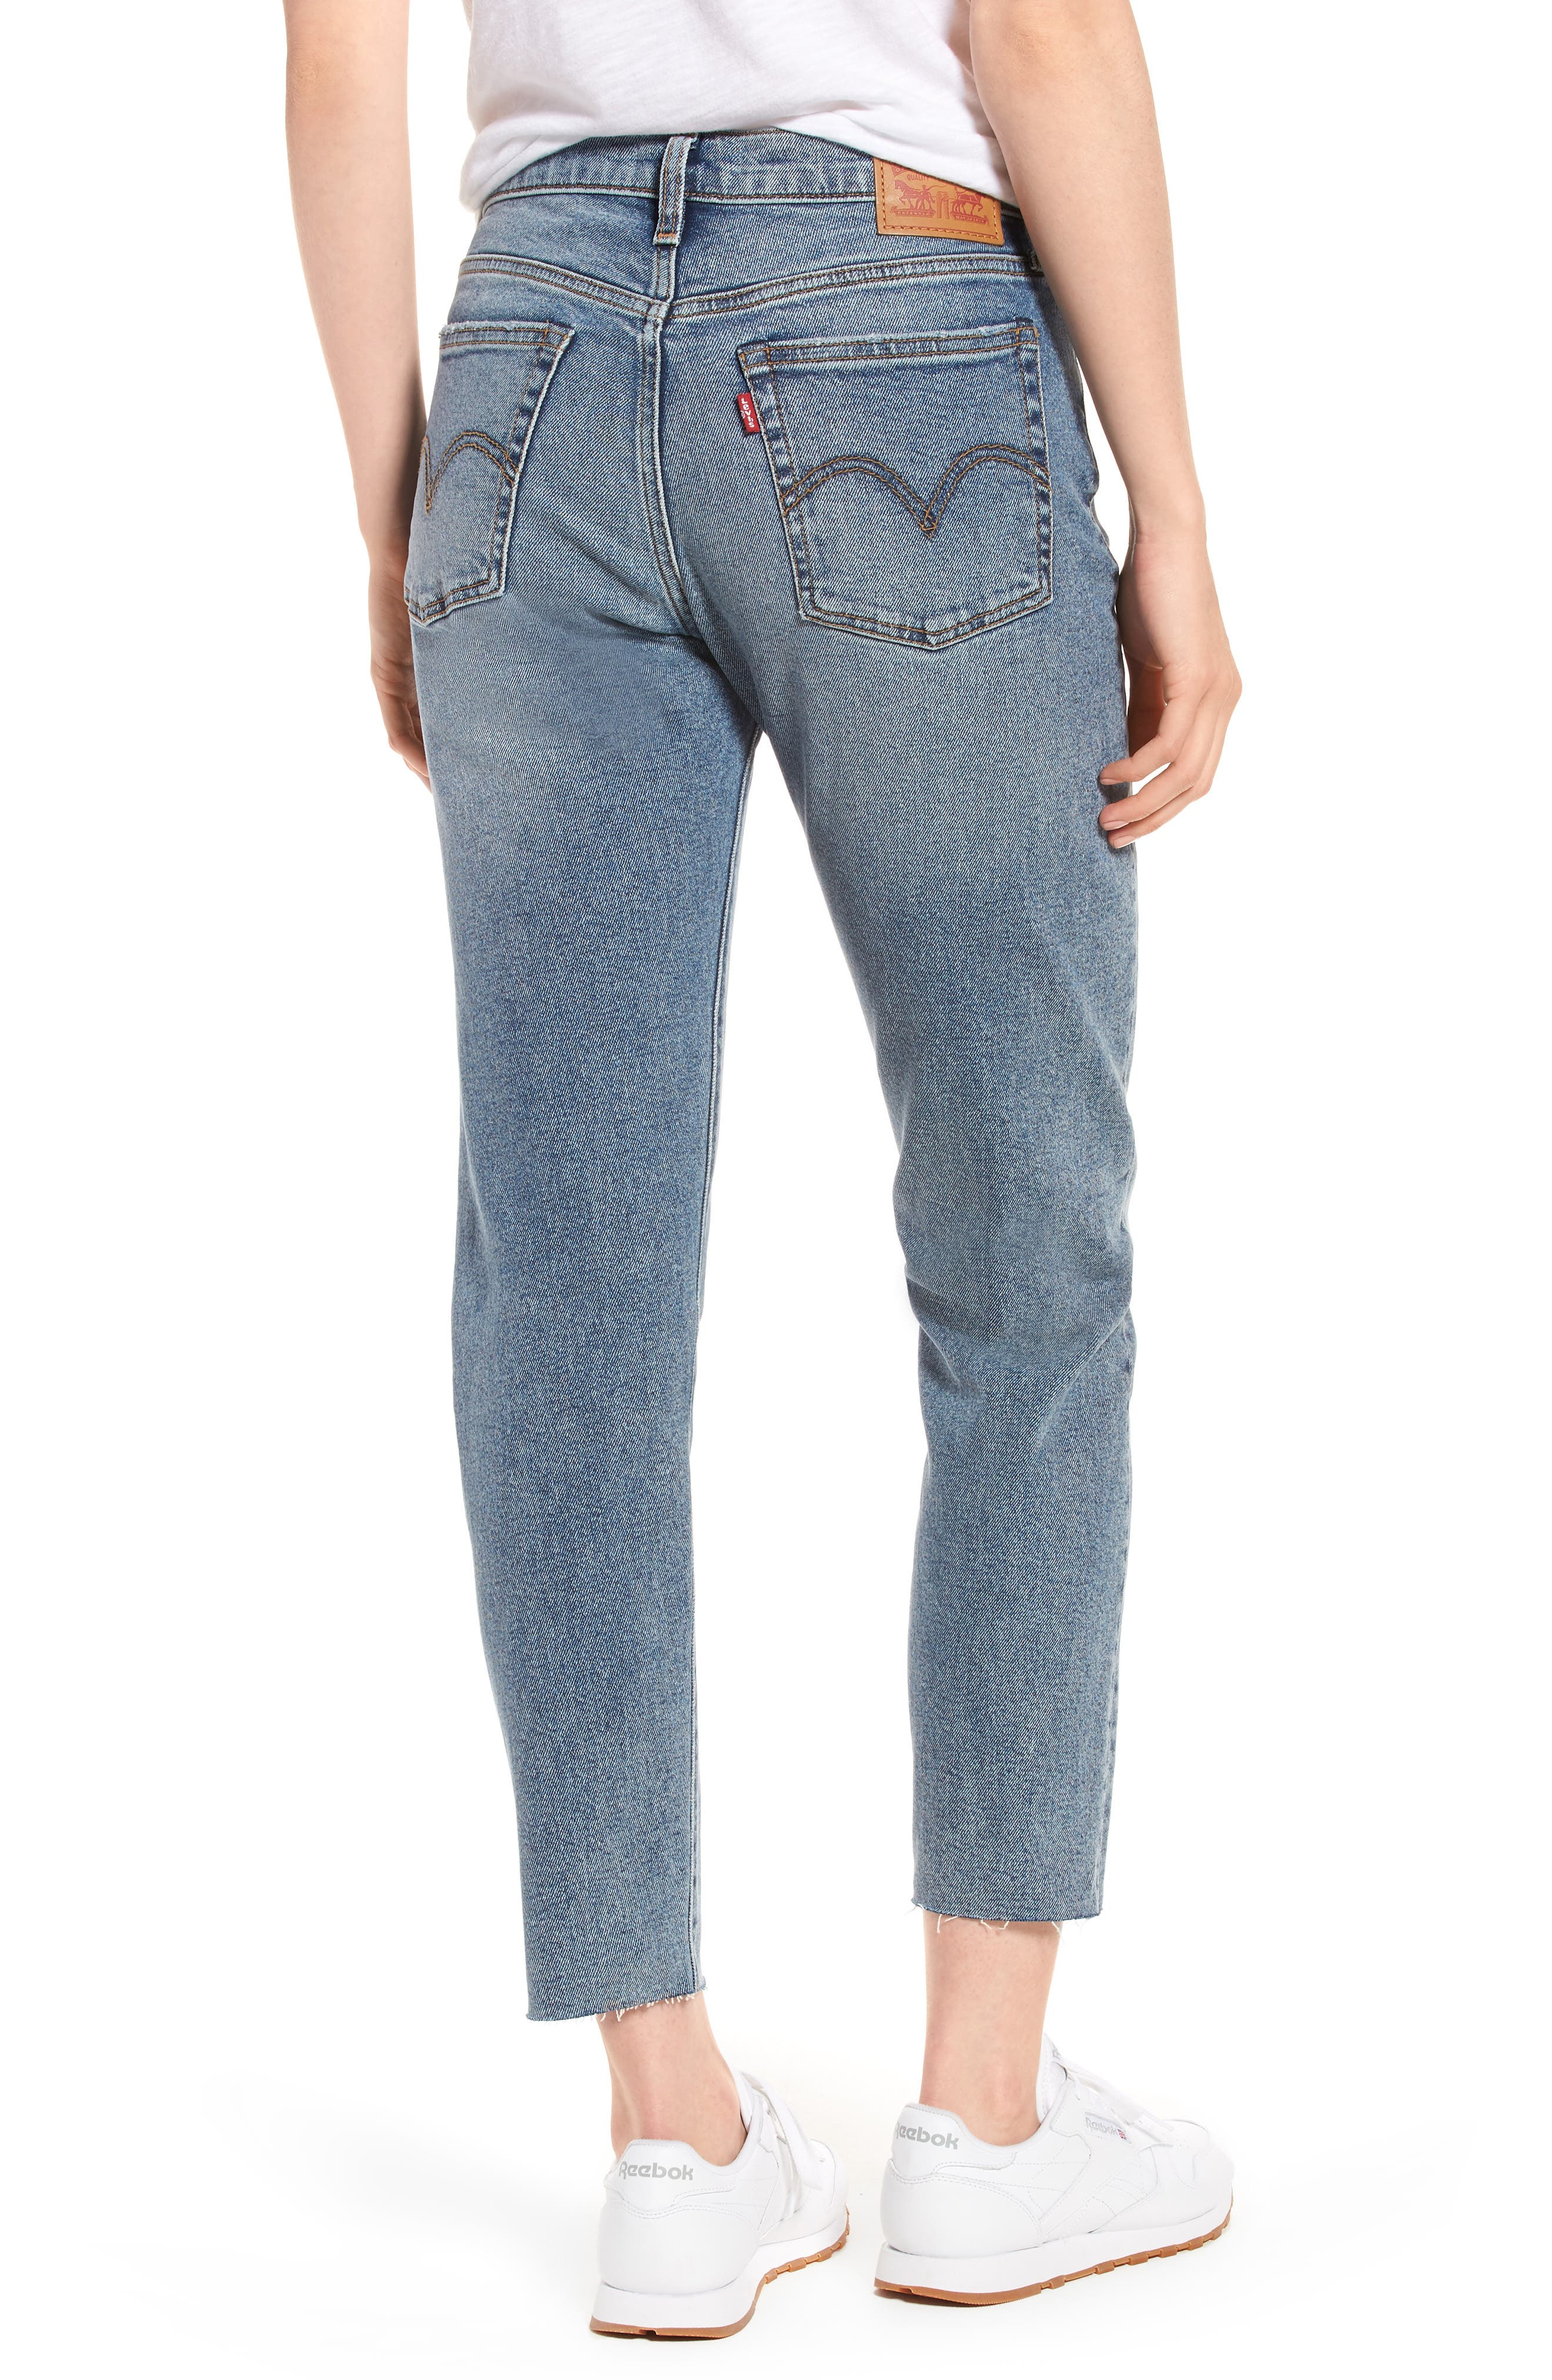 Wedgie Icon Fit High Waist Crop Jeans,                             Alternate thumbnail 2, color,                             401